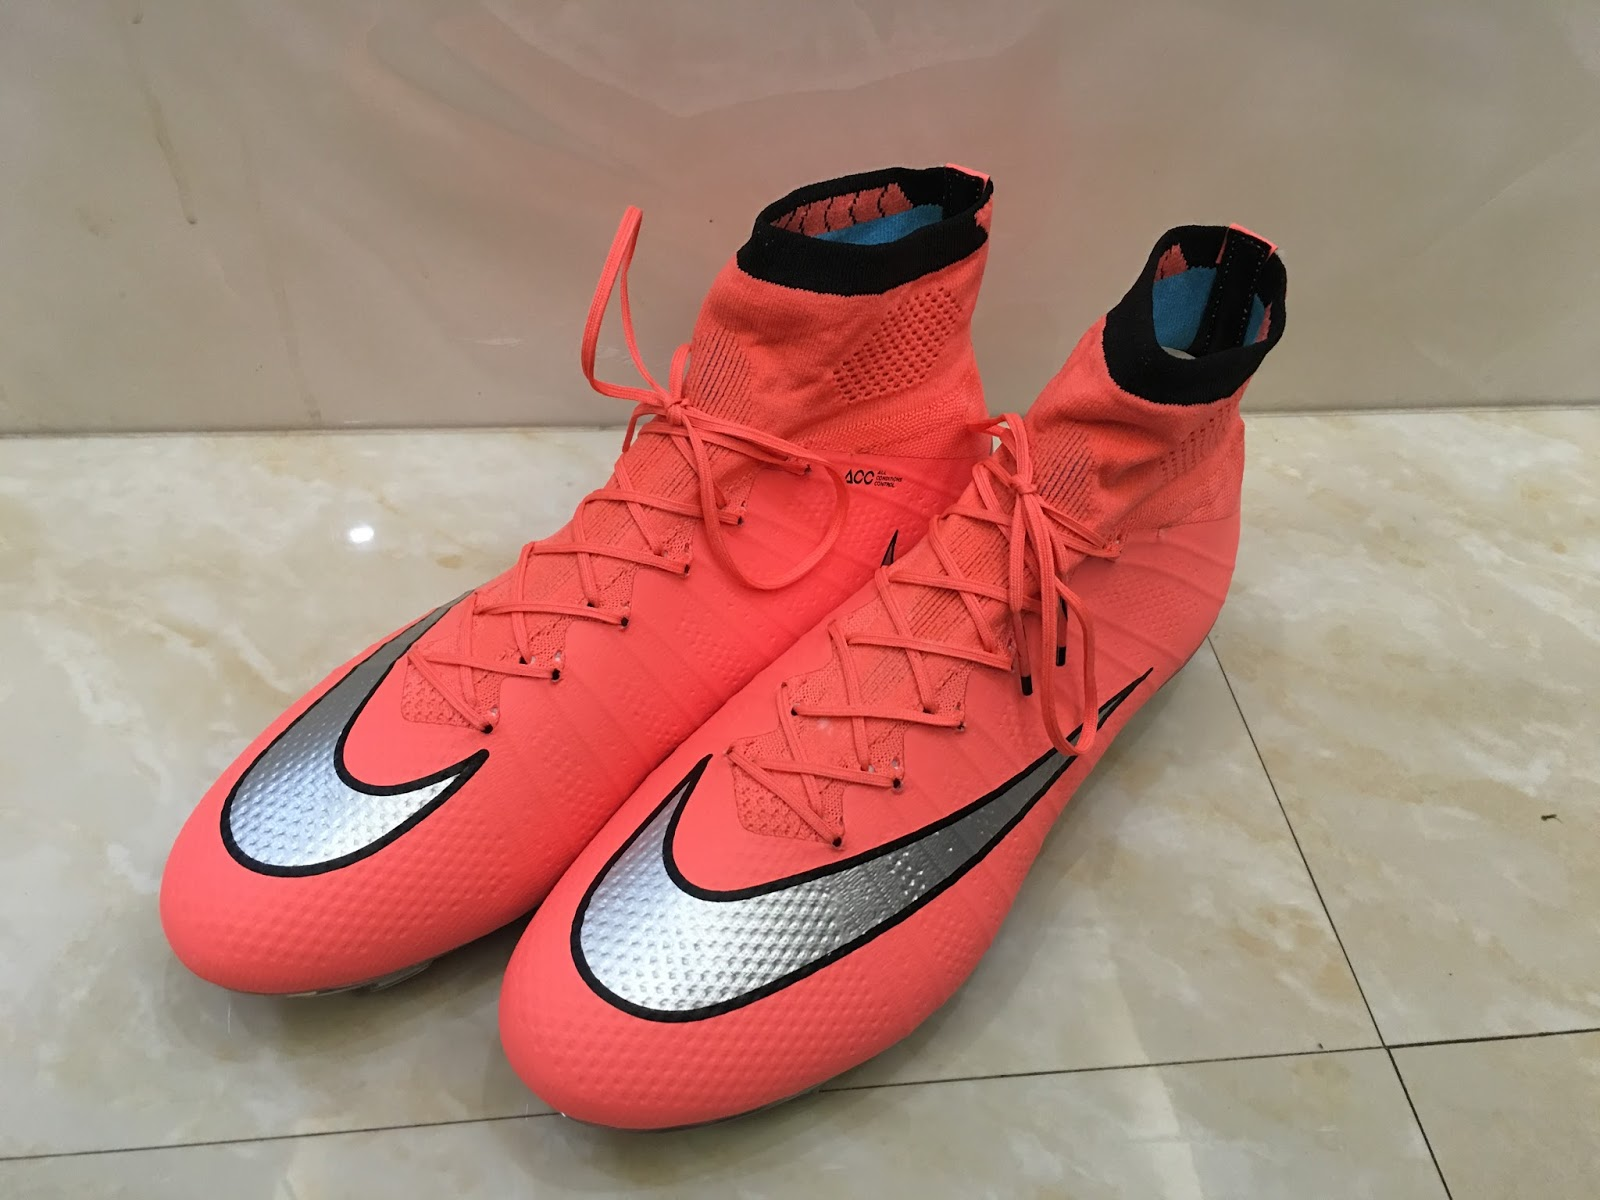 ... Metallic Silver for the Swoosh, the orange Nike Mercurial Superfly 2016  Boots introduce a fresh design for the first Mercurial colorway of the new  year.